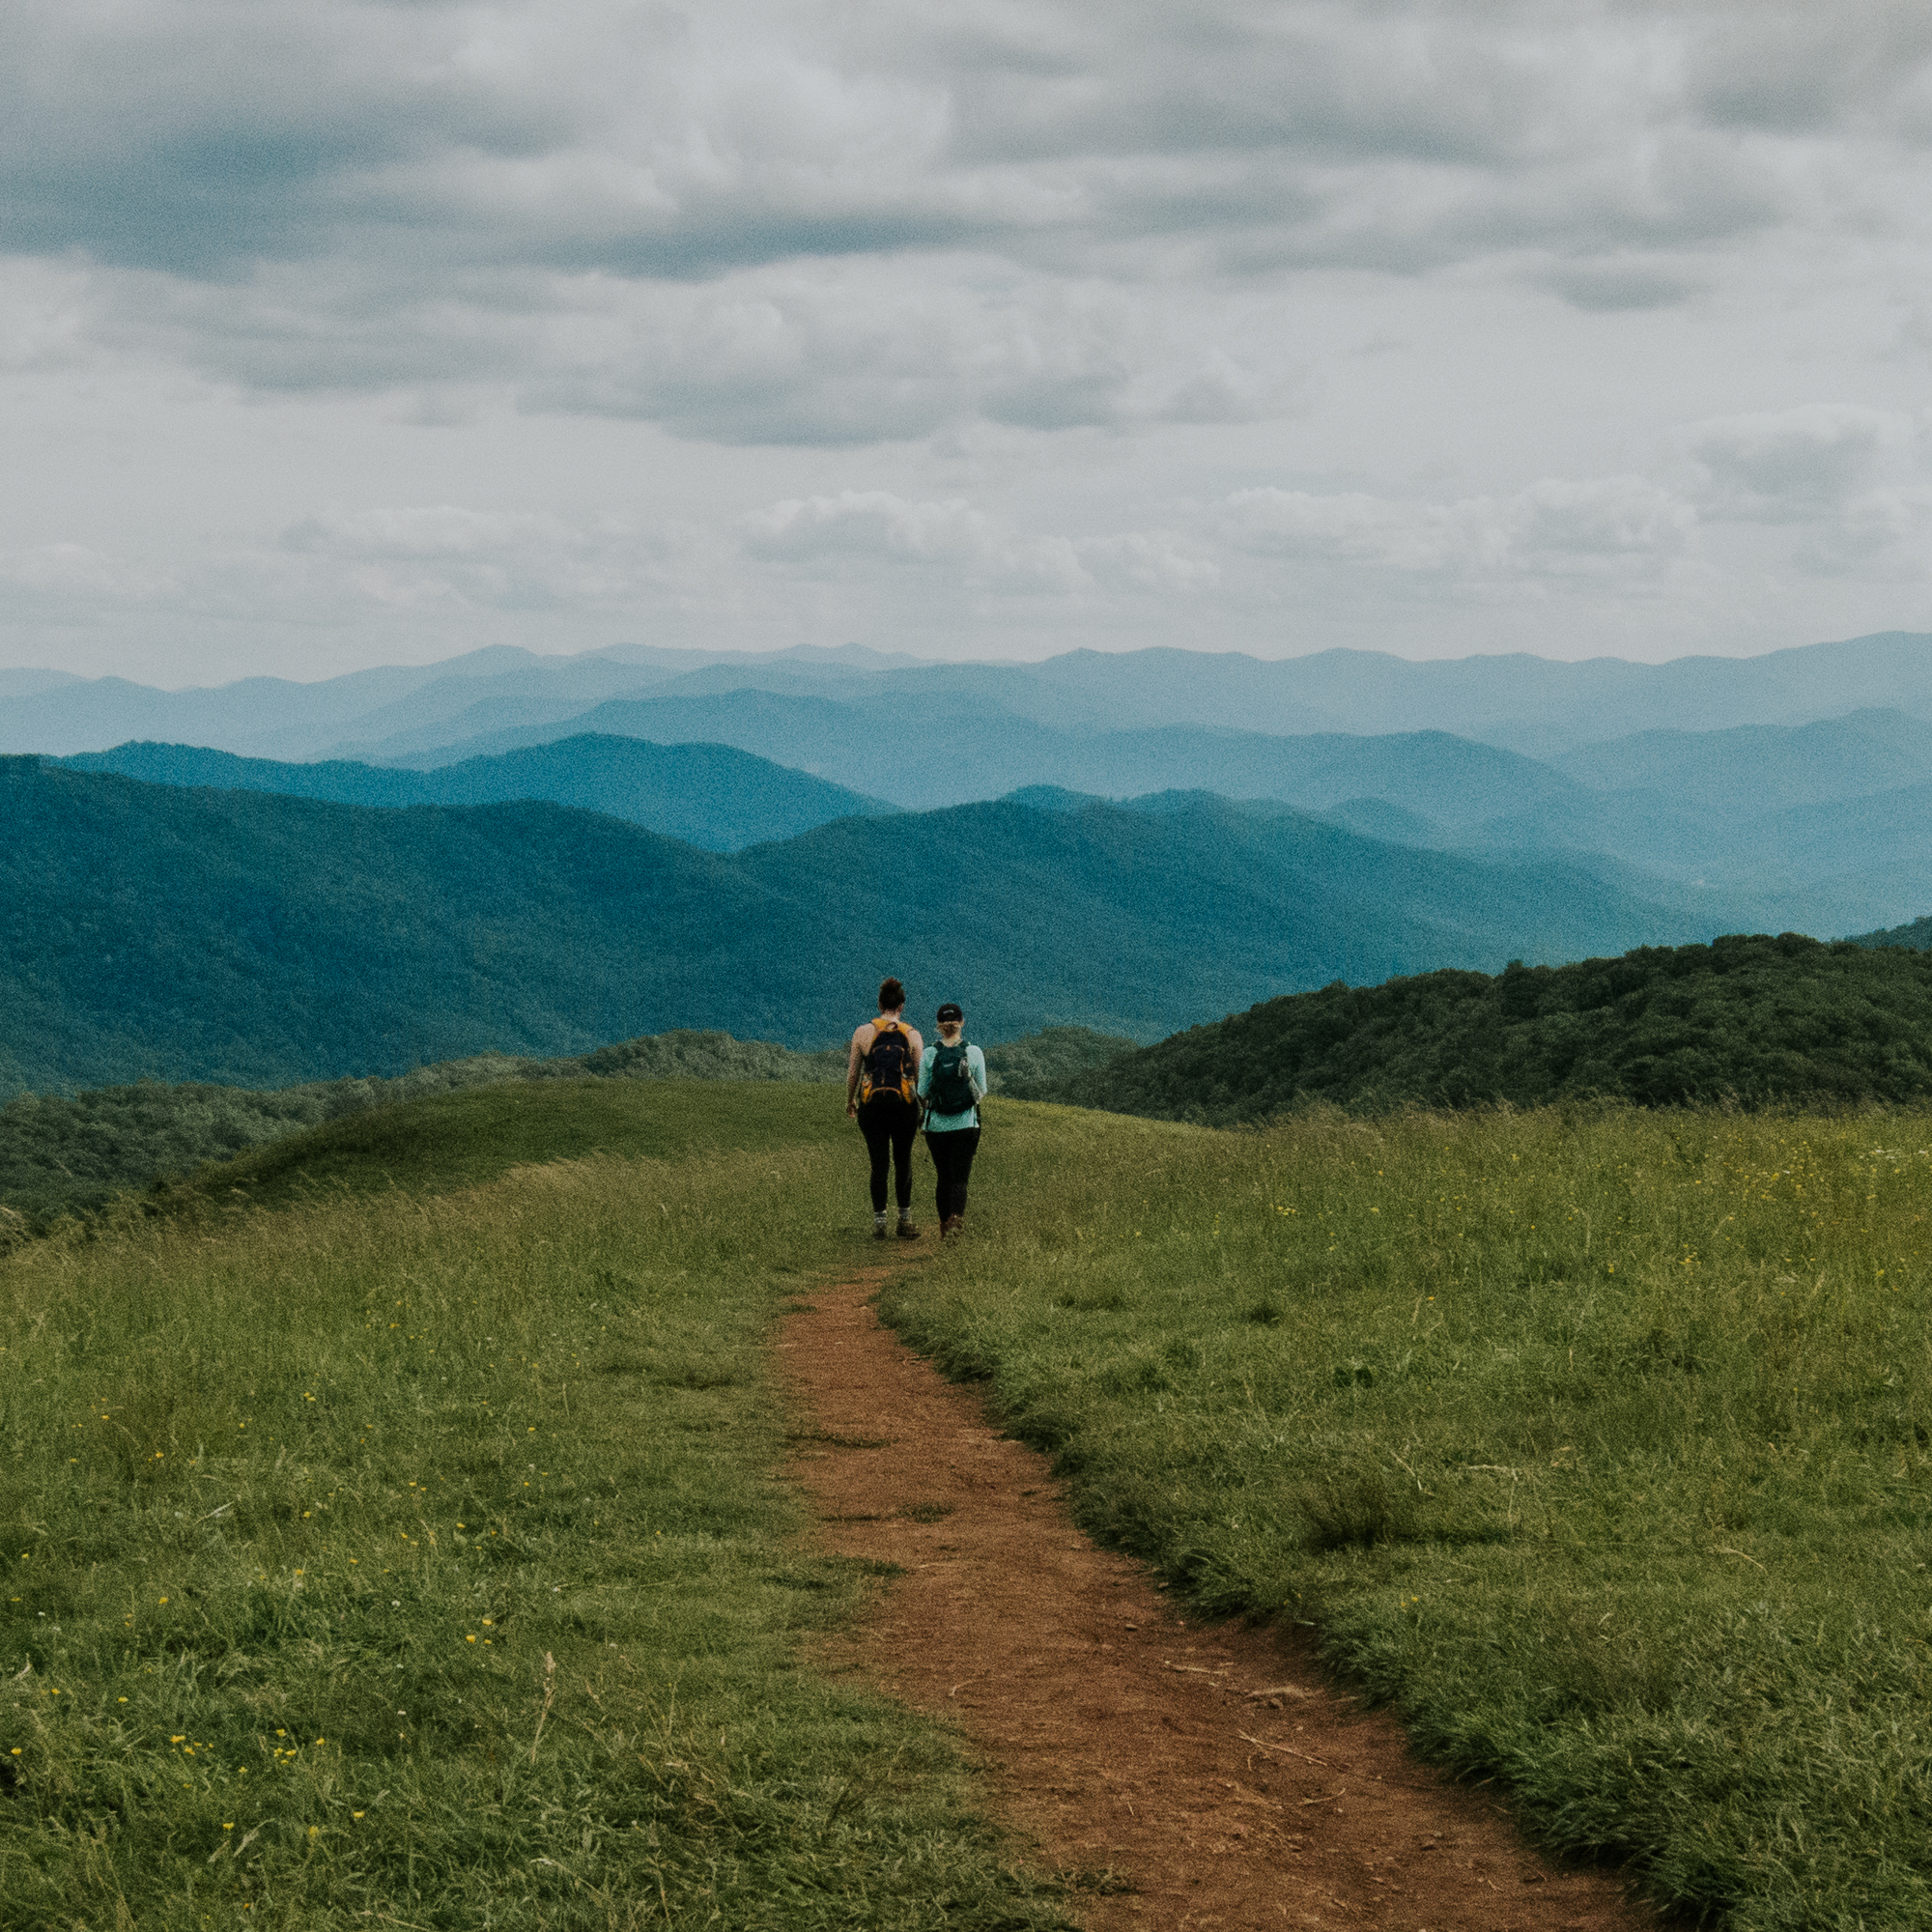 north carolina photographer max patch backpacking appalachian trial asheville indiana photographer